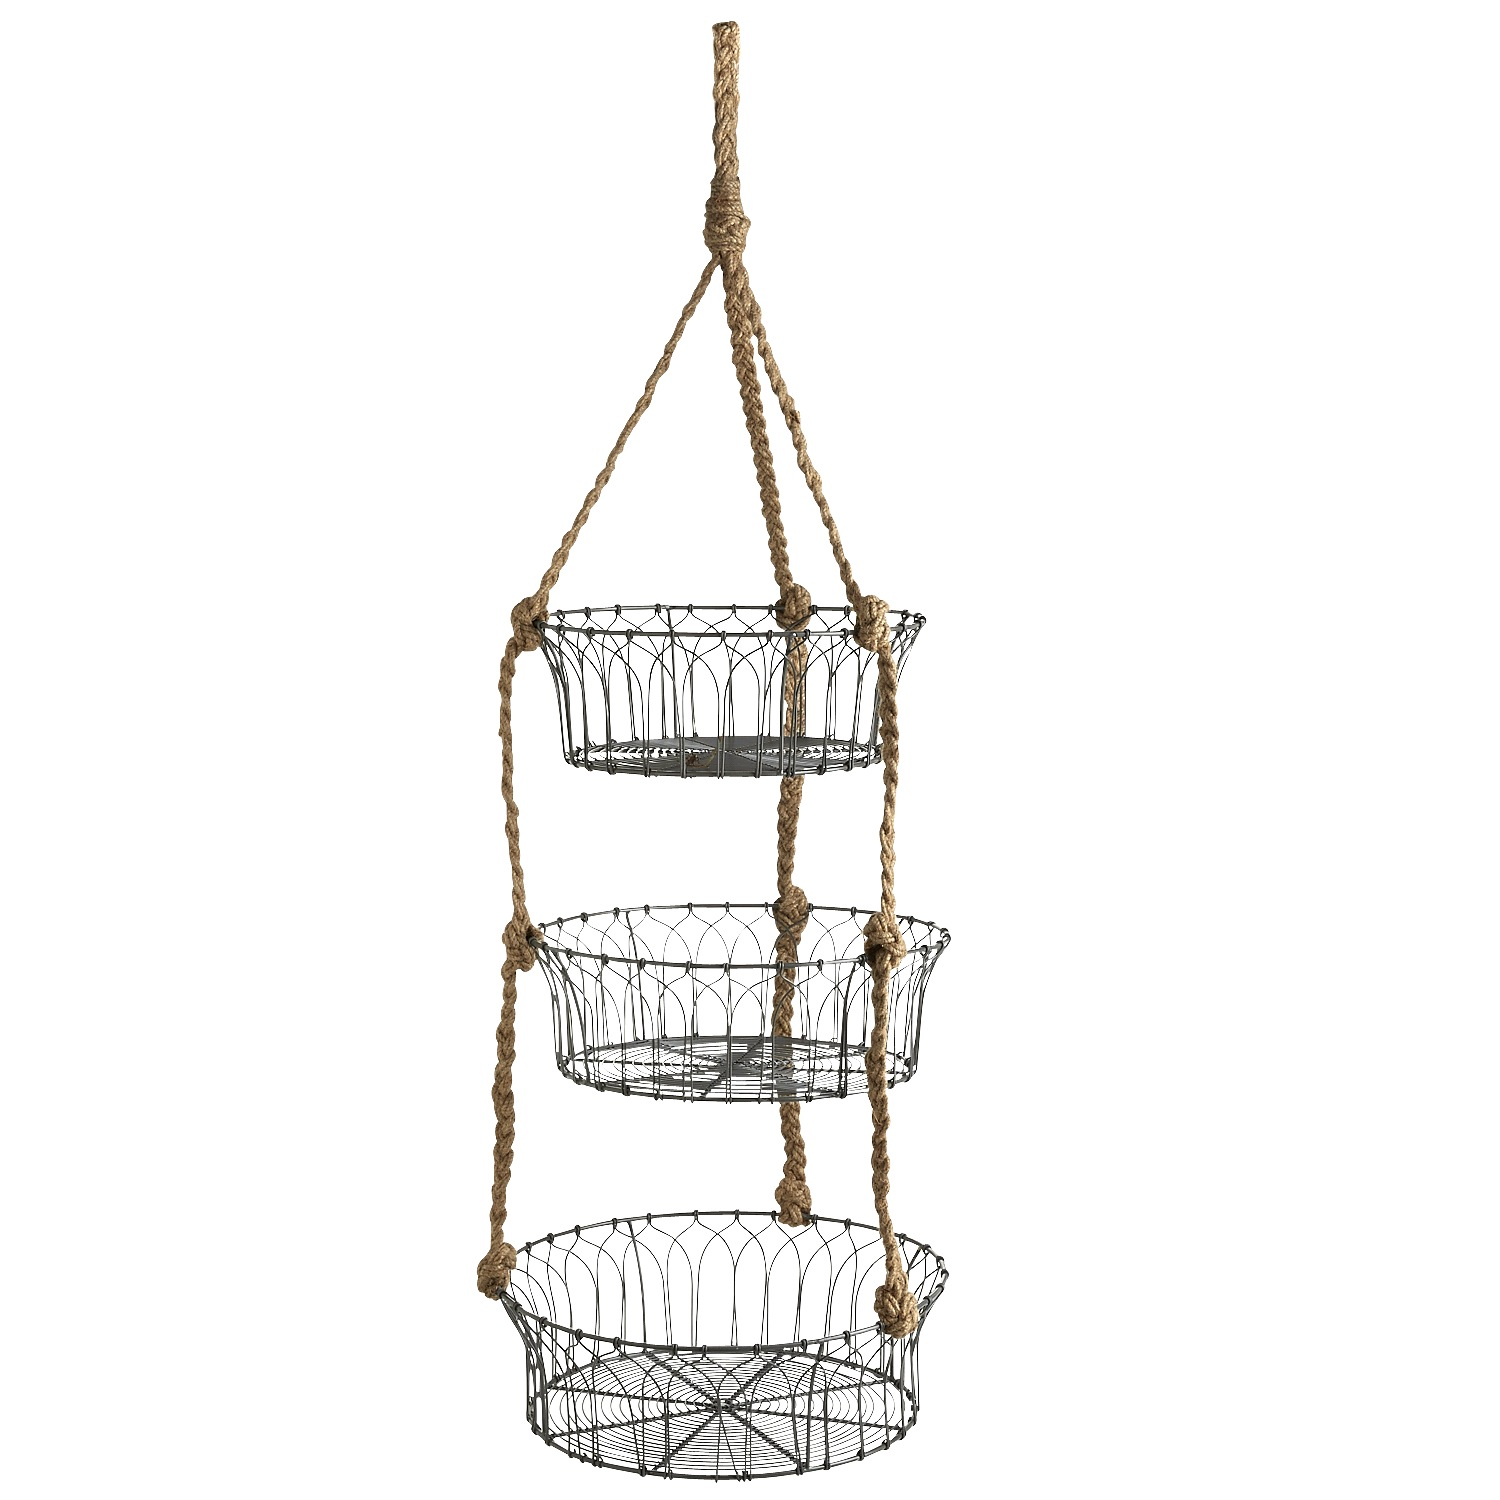 Hanging Veggie Basket with Rope